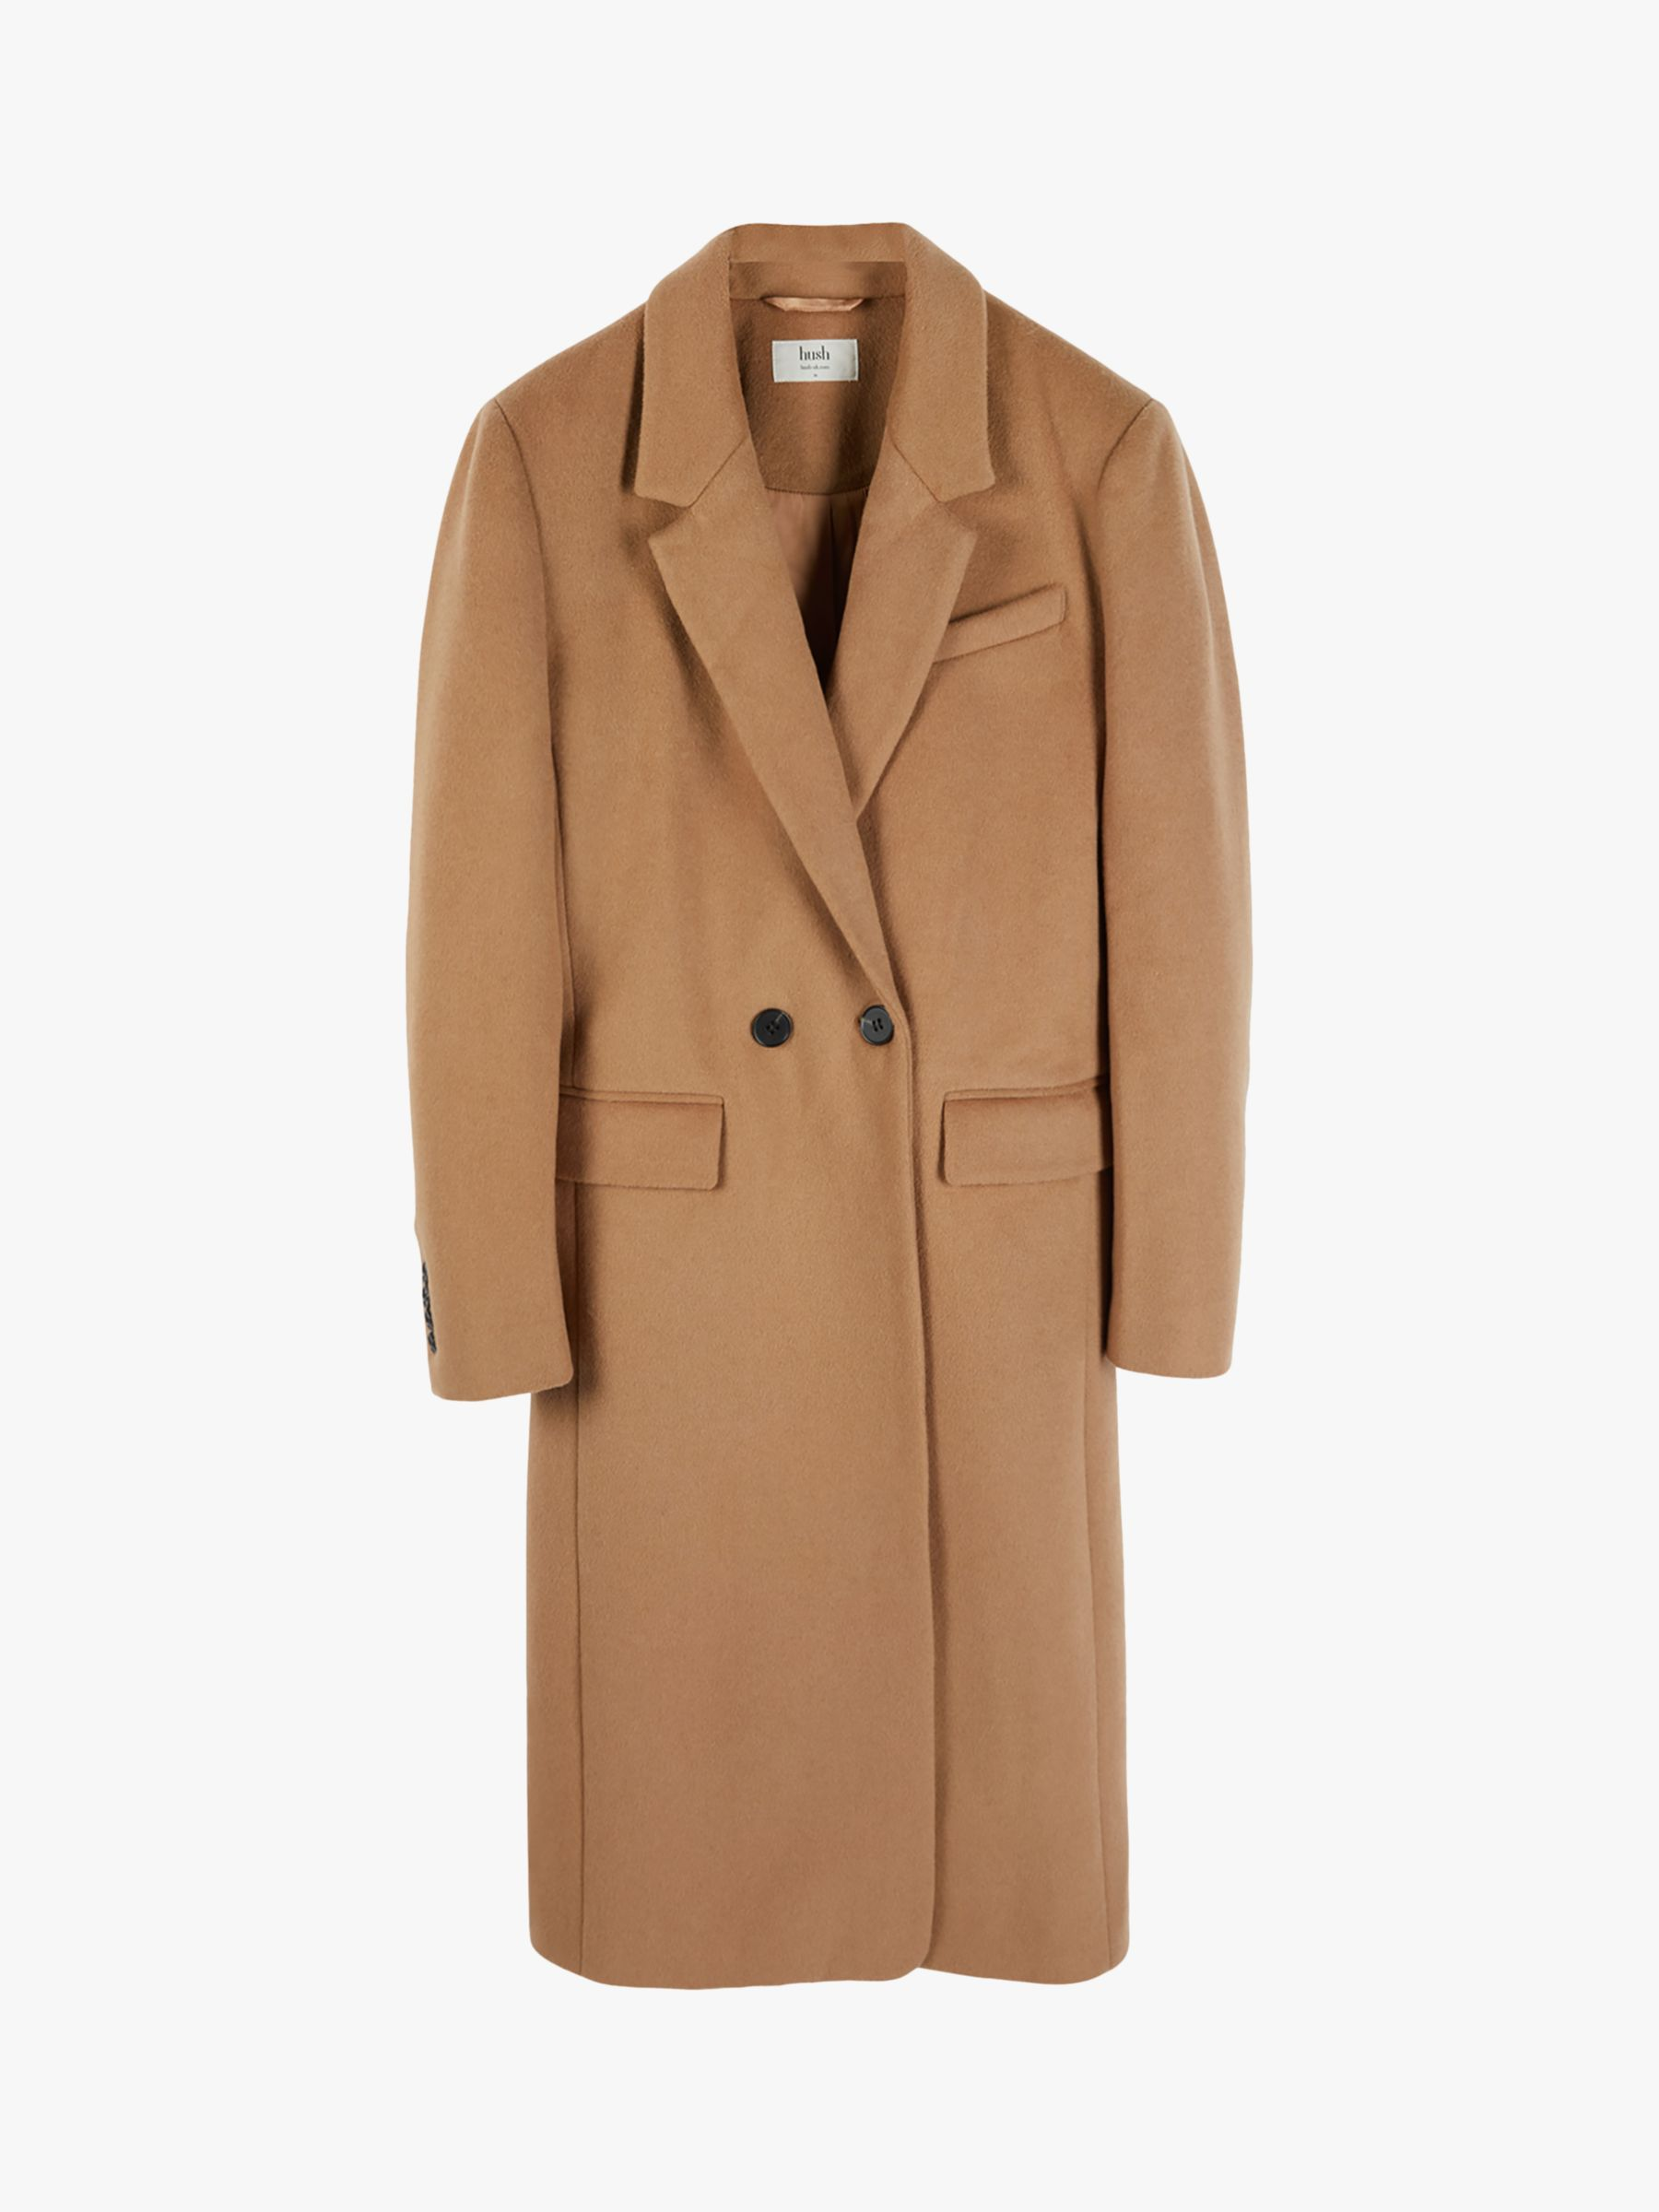 hush Perfect Crombie Jacket, Tan, 6